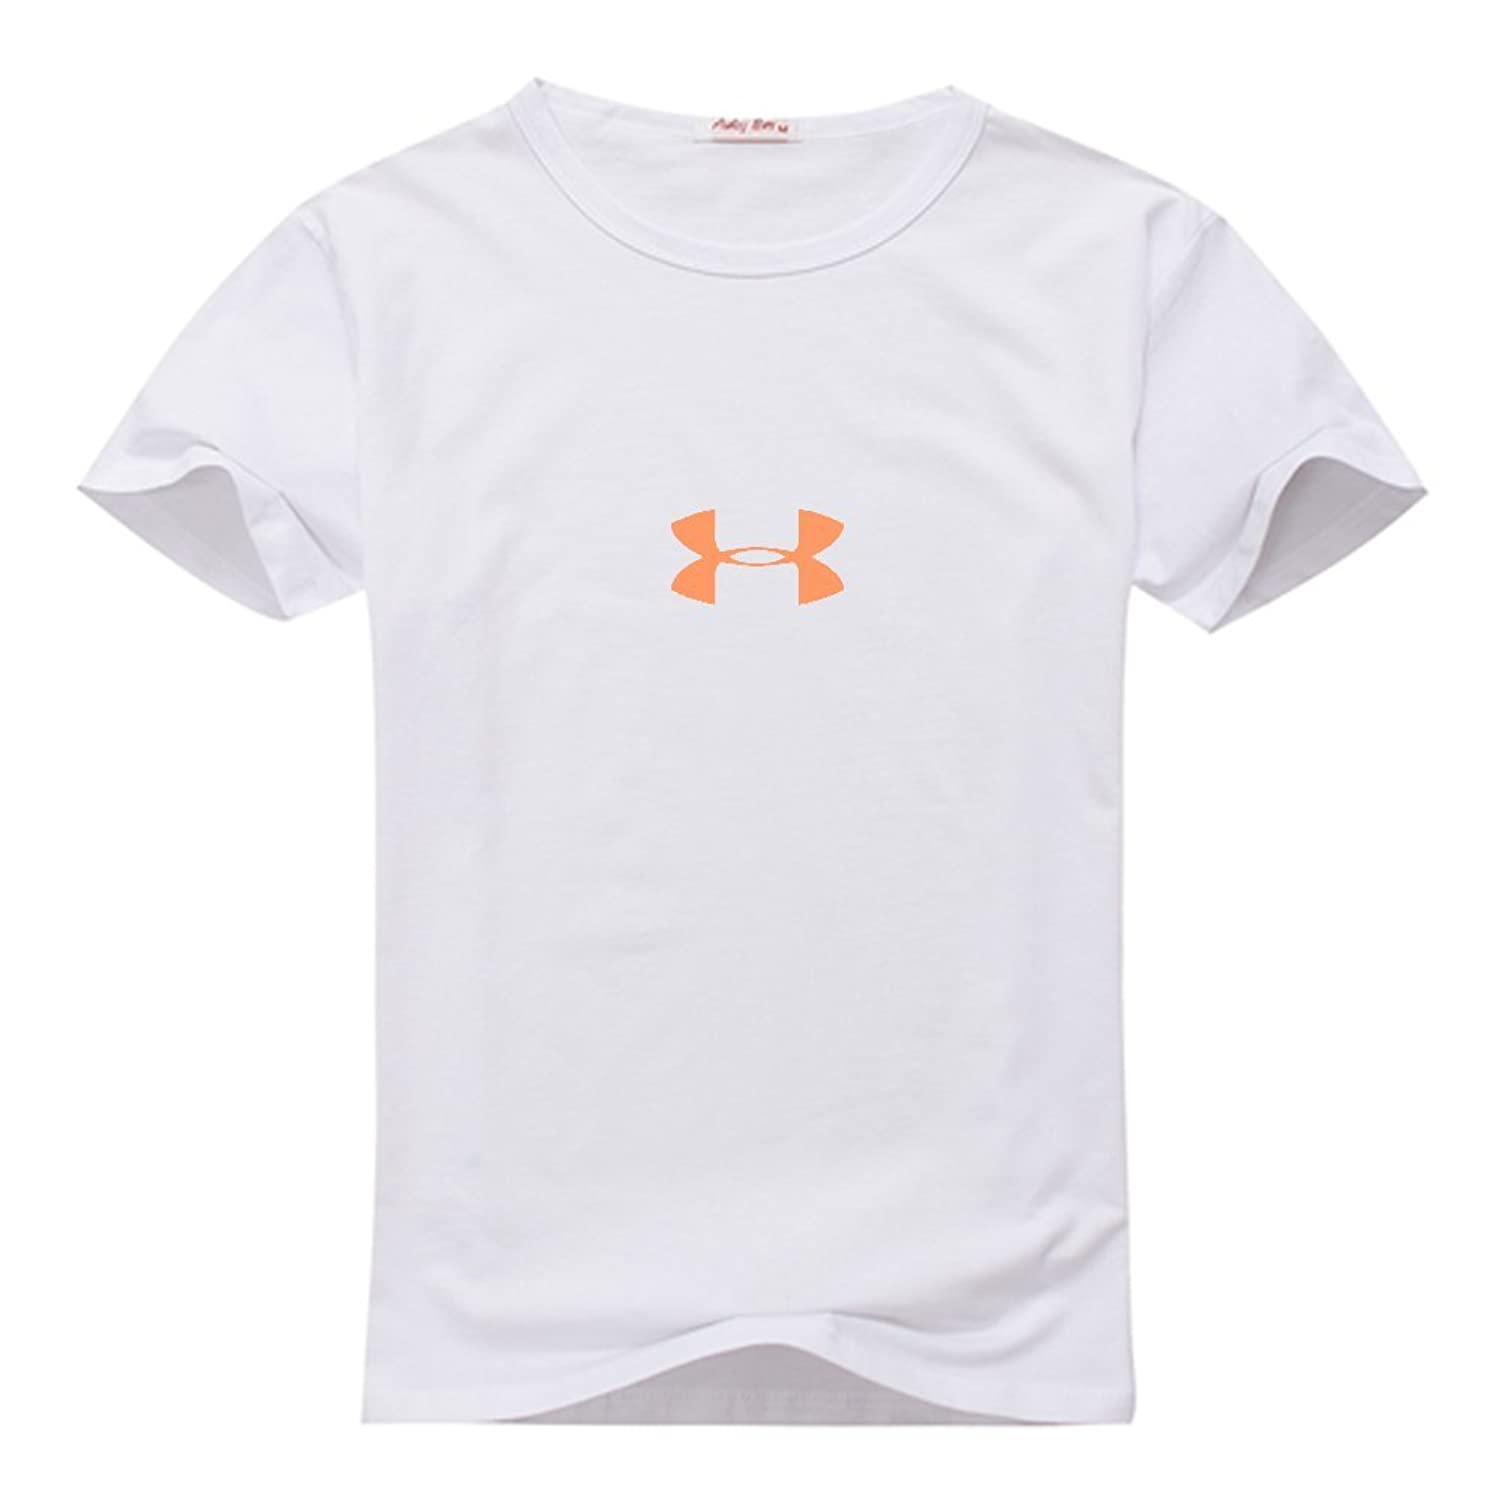 Yangshan Lin under armour2 women's Crew Neck Tee shirt